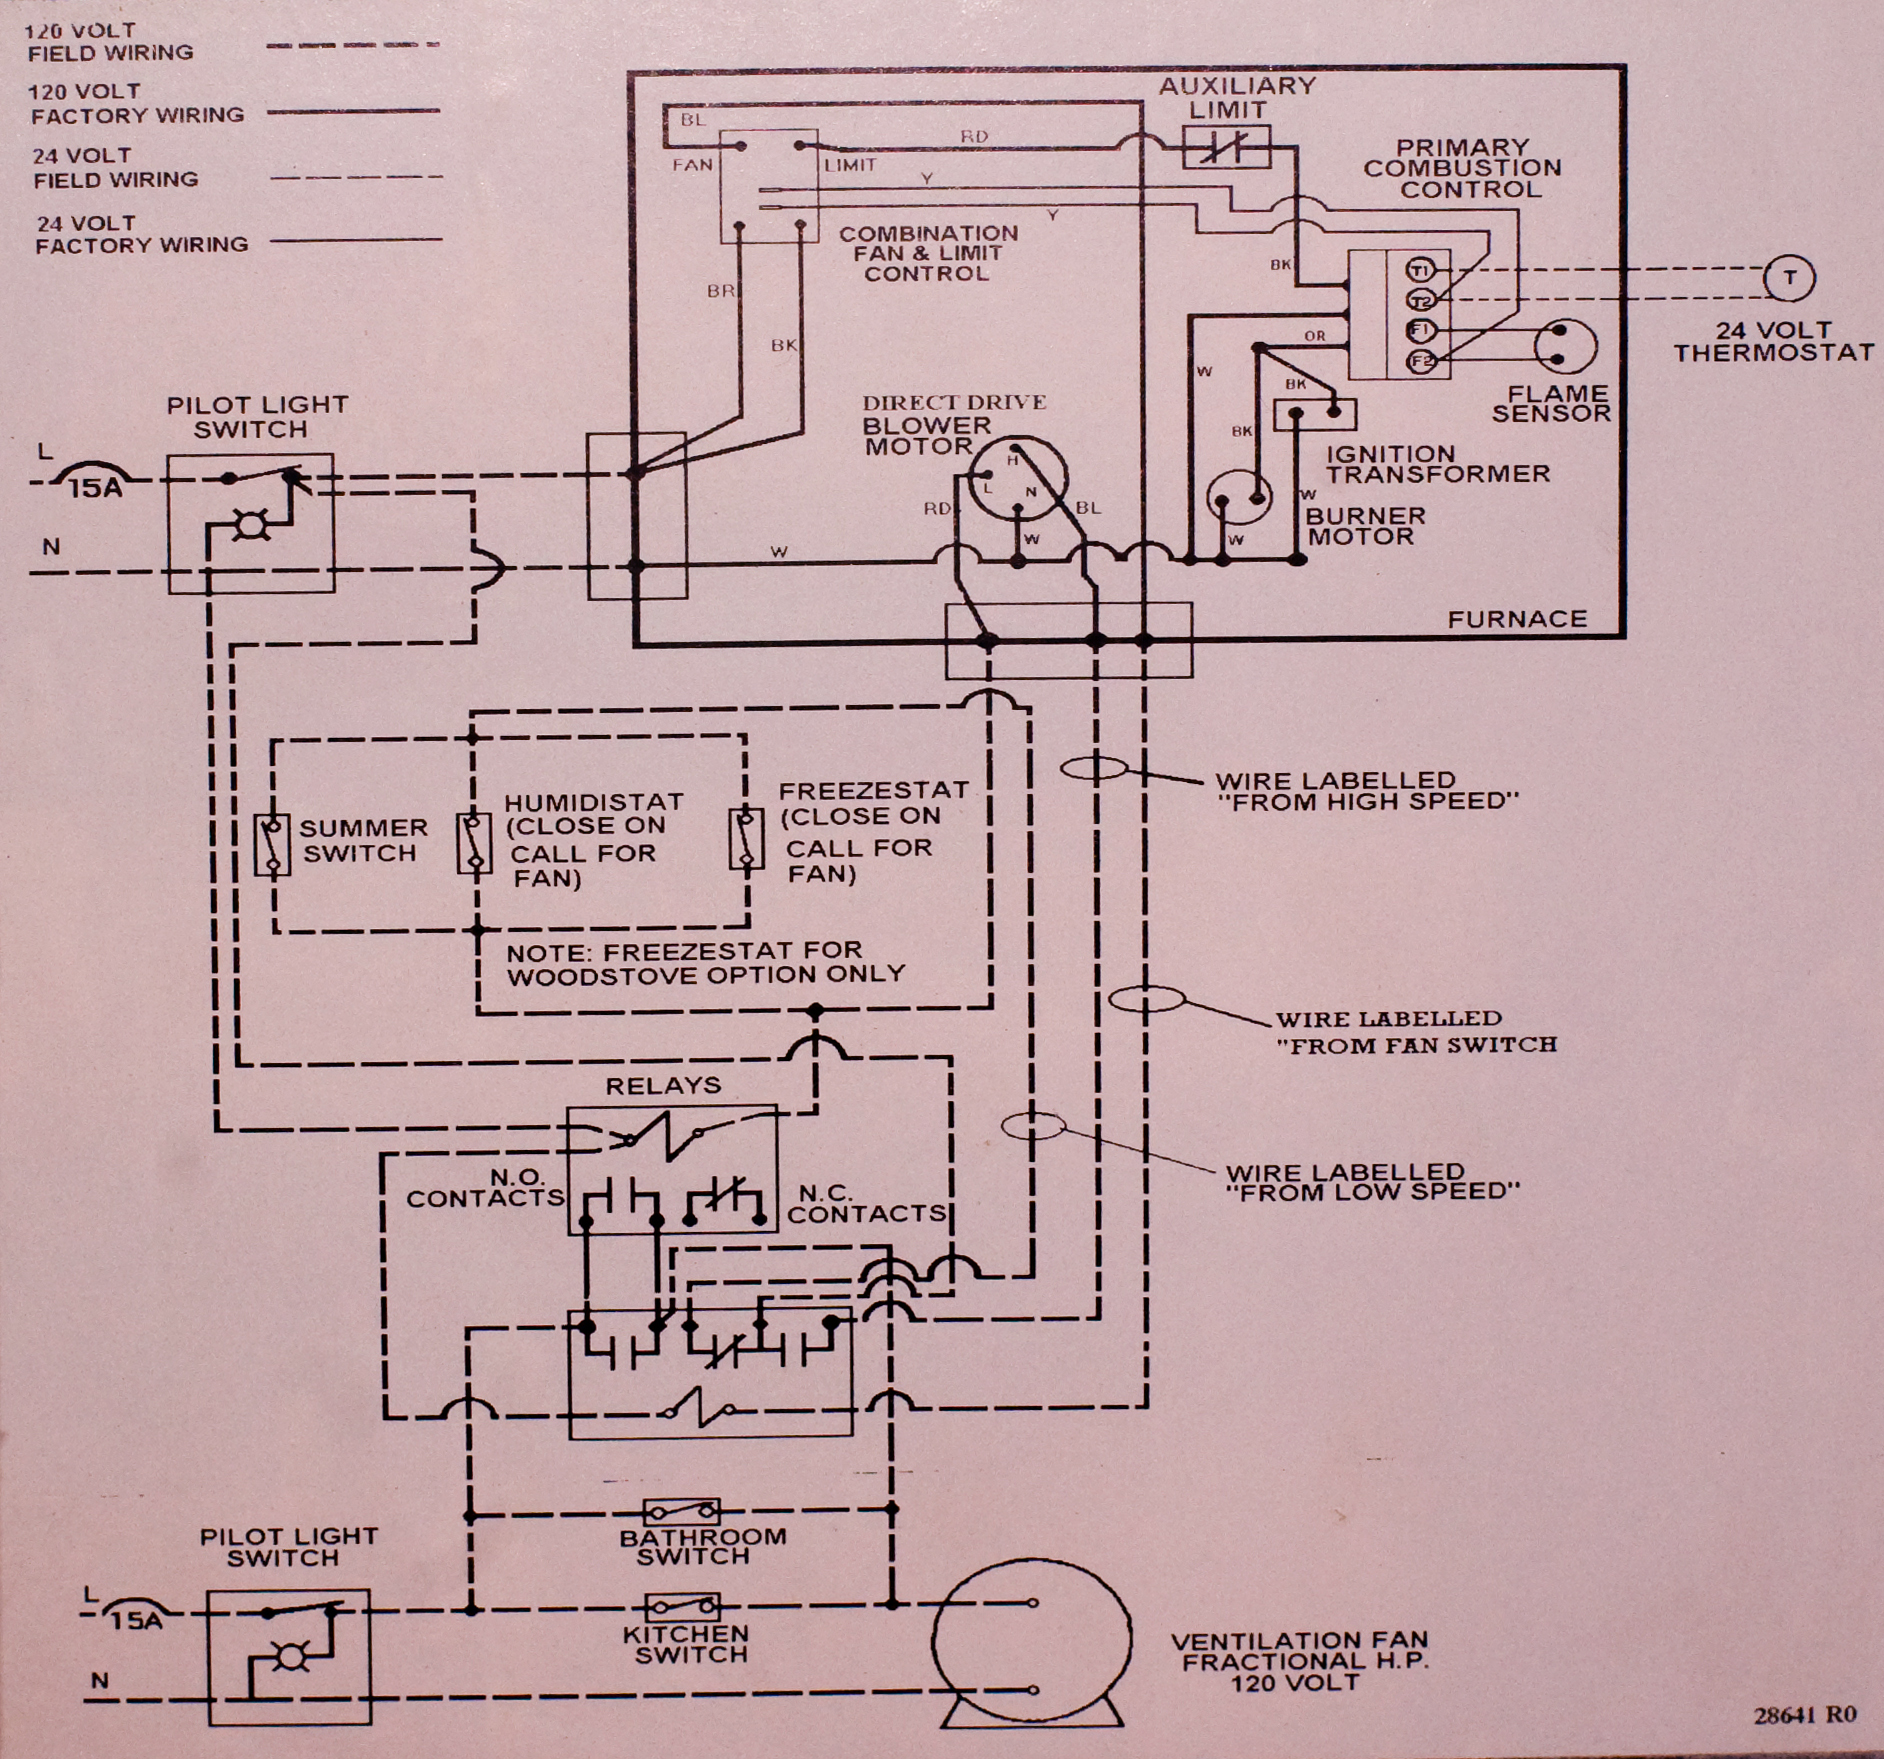 Ek 3304 Wiring Diagram Electric Stove Together With Electrical Wiring Diagrams Free Diagram